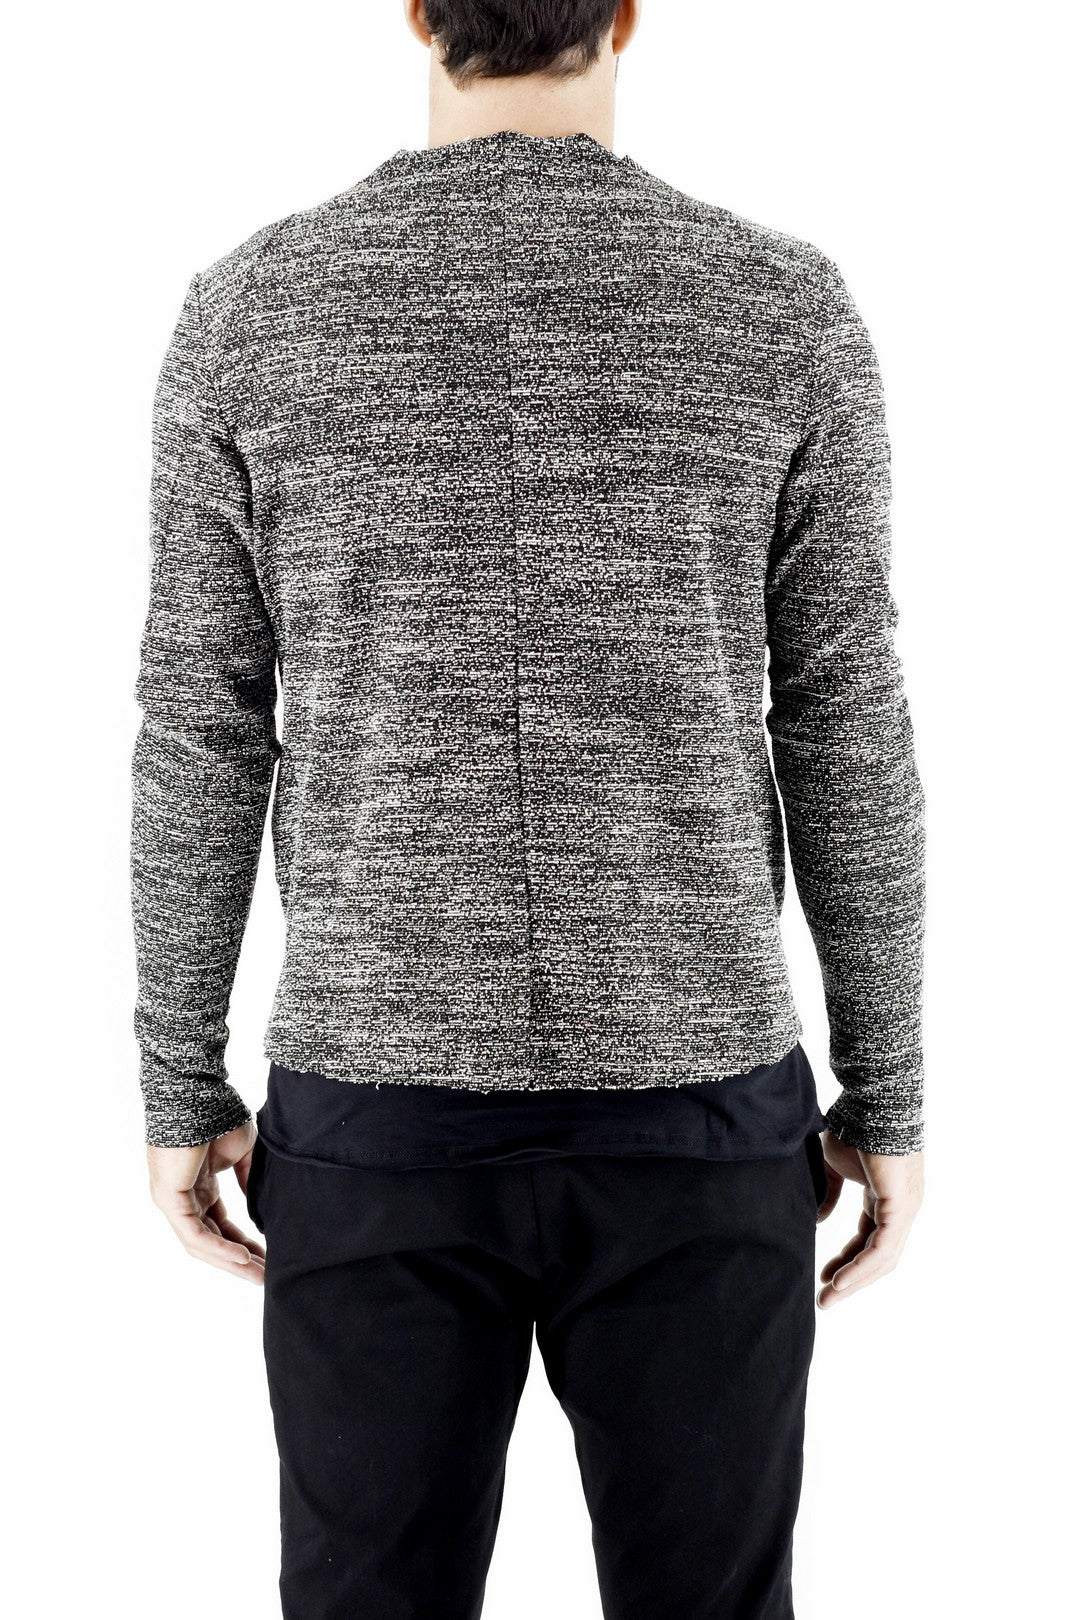 Mens Casual Active Zip Jacket in Marl Boucle  ZG5191